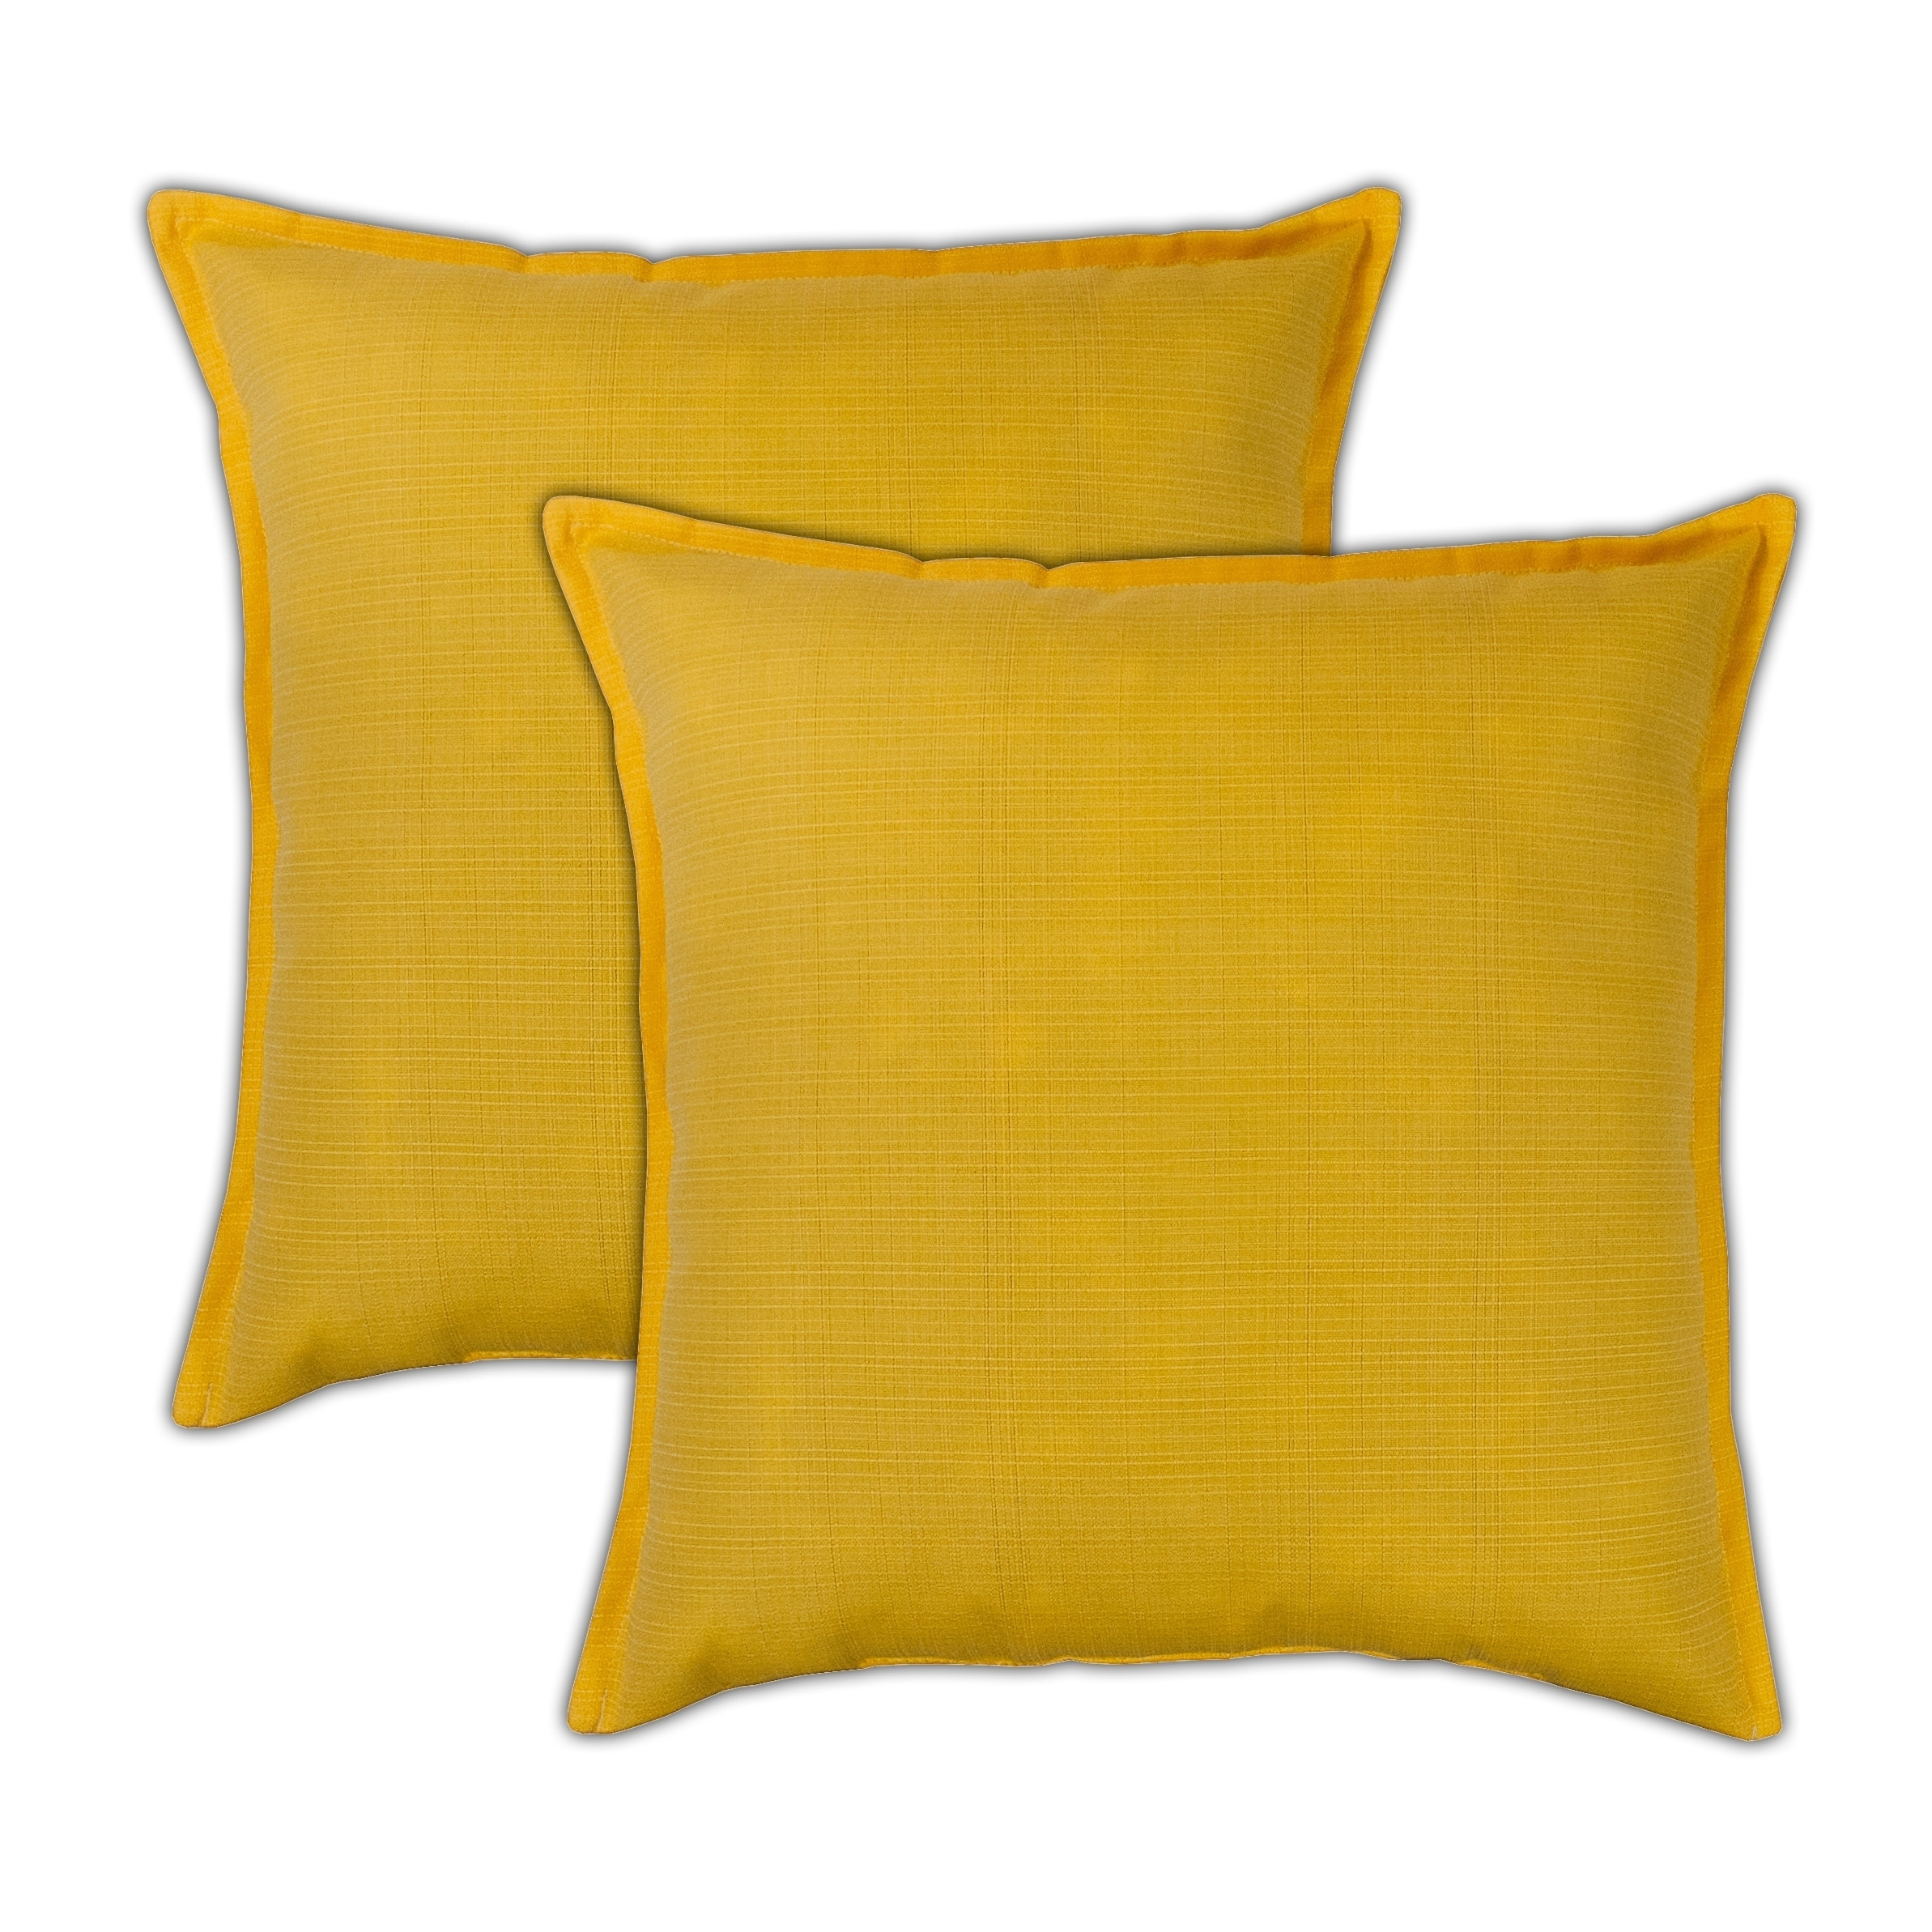 Sherry Kline Dolce 20 Inch Outdoor Pillows Set Of 2 20 X 20